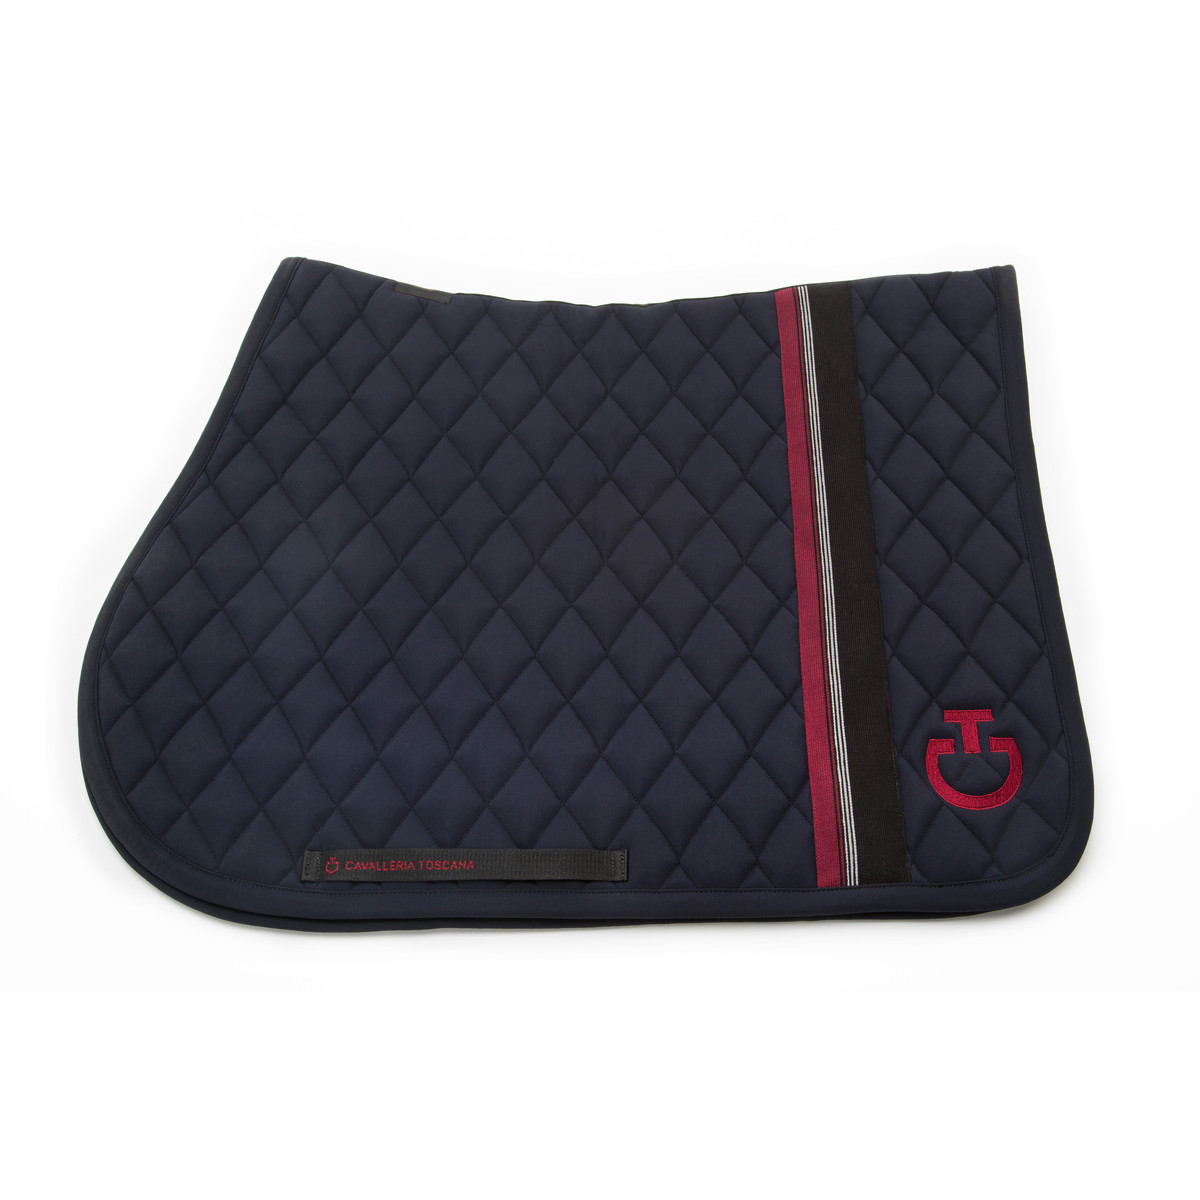 Cavalleria Toscana Embroidered Rhombi Jumping Saddle Pad